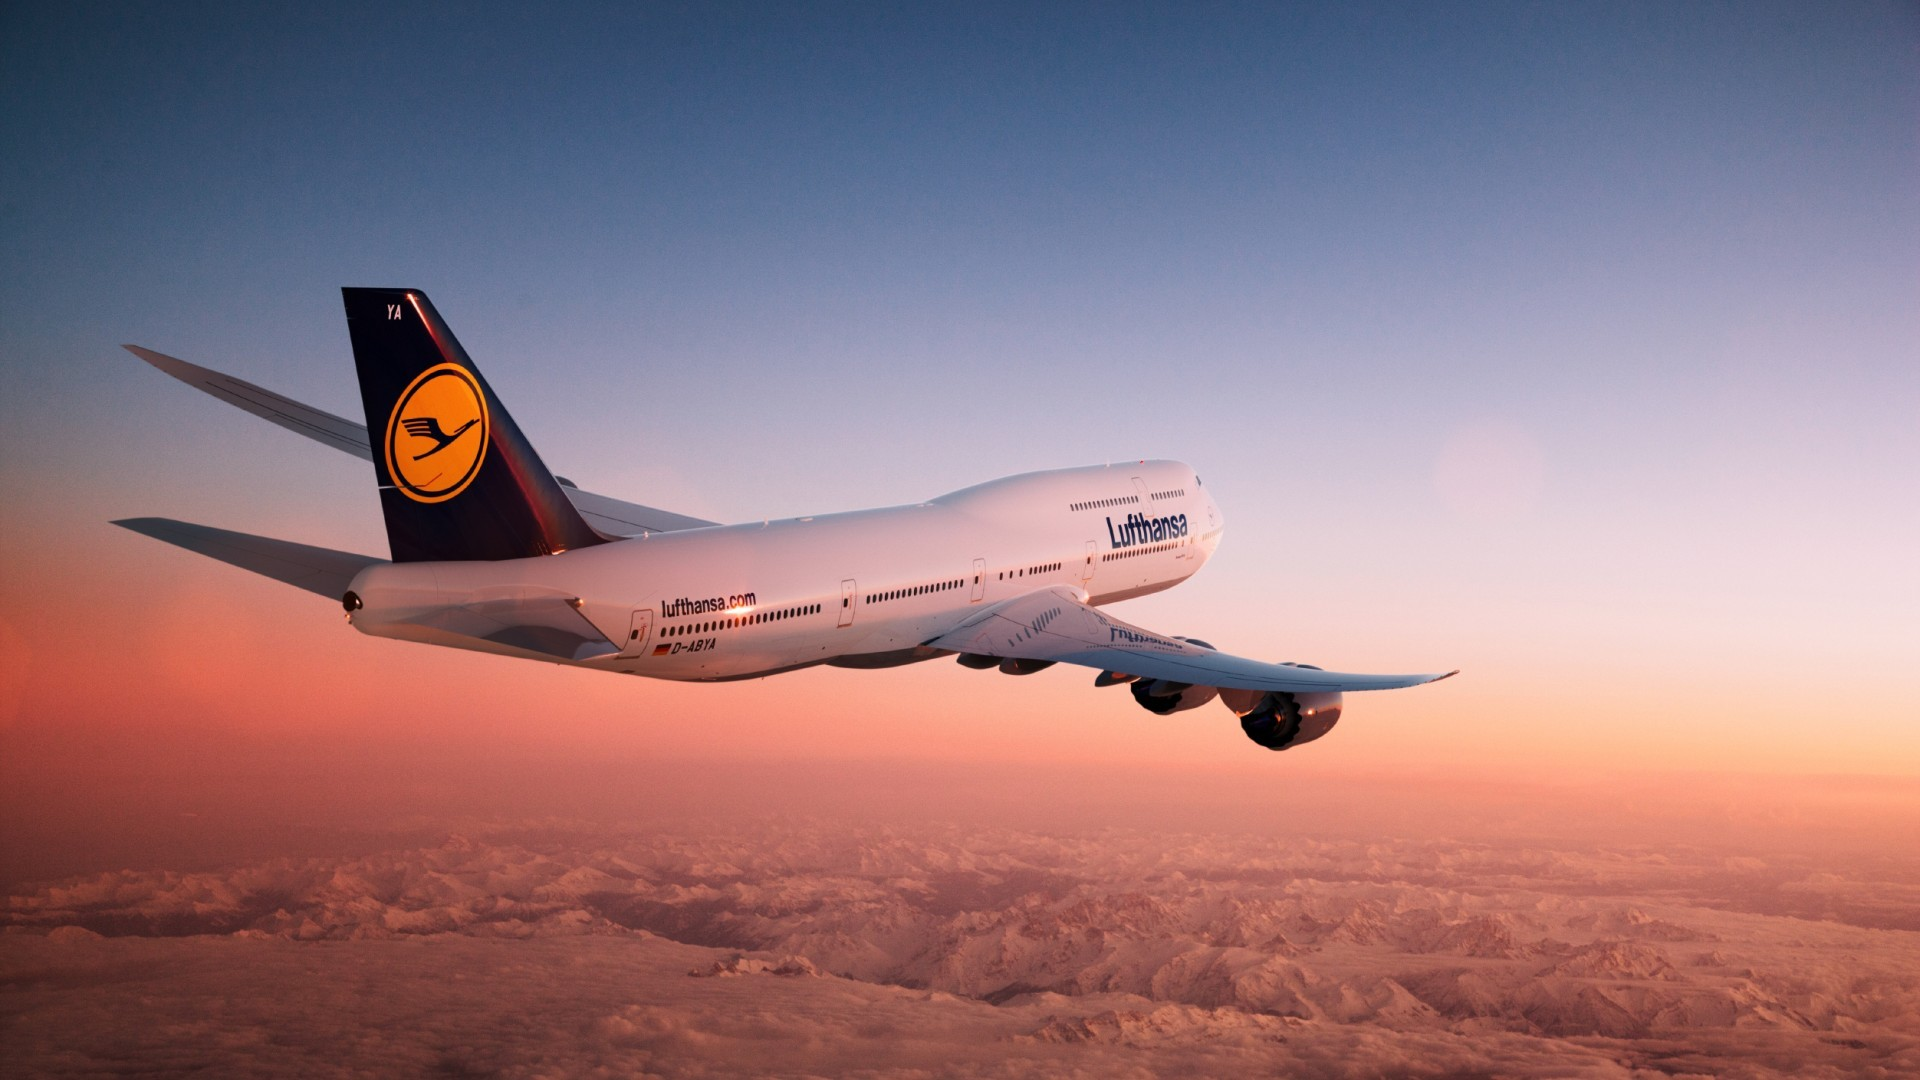 Boeing 747 hd wallpapers free download - Boeing wallpapers for desktop ...